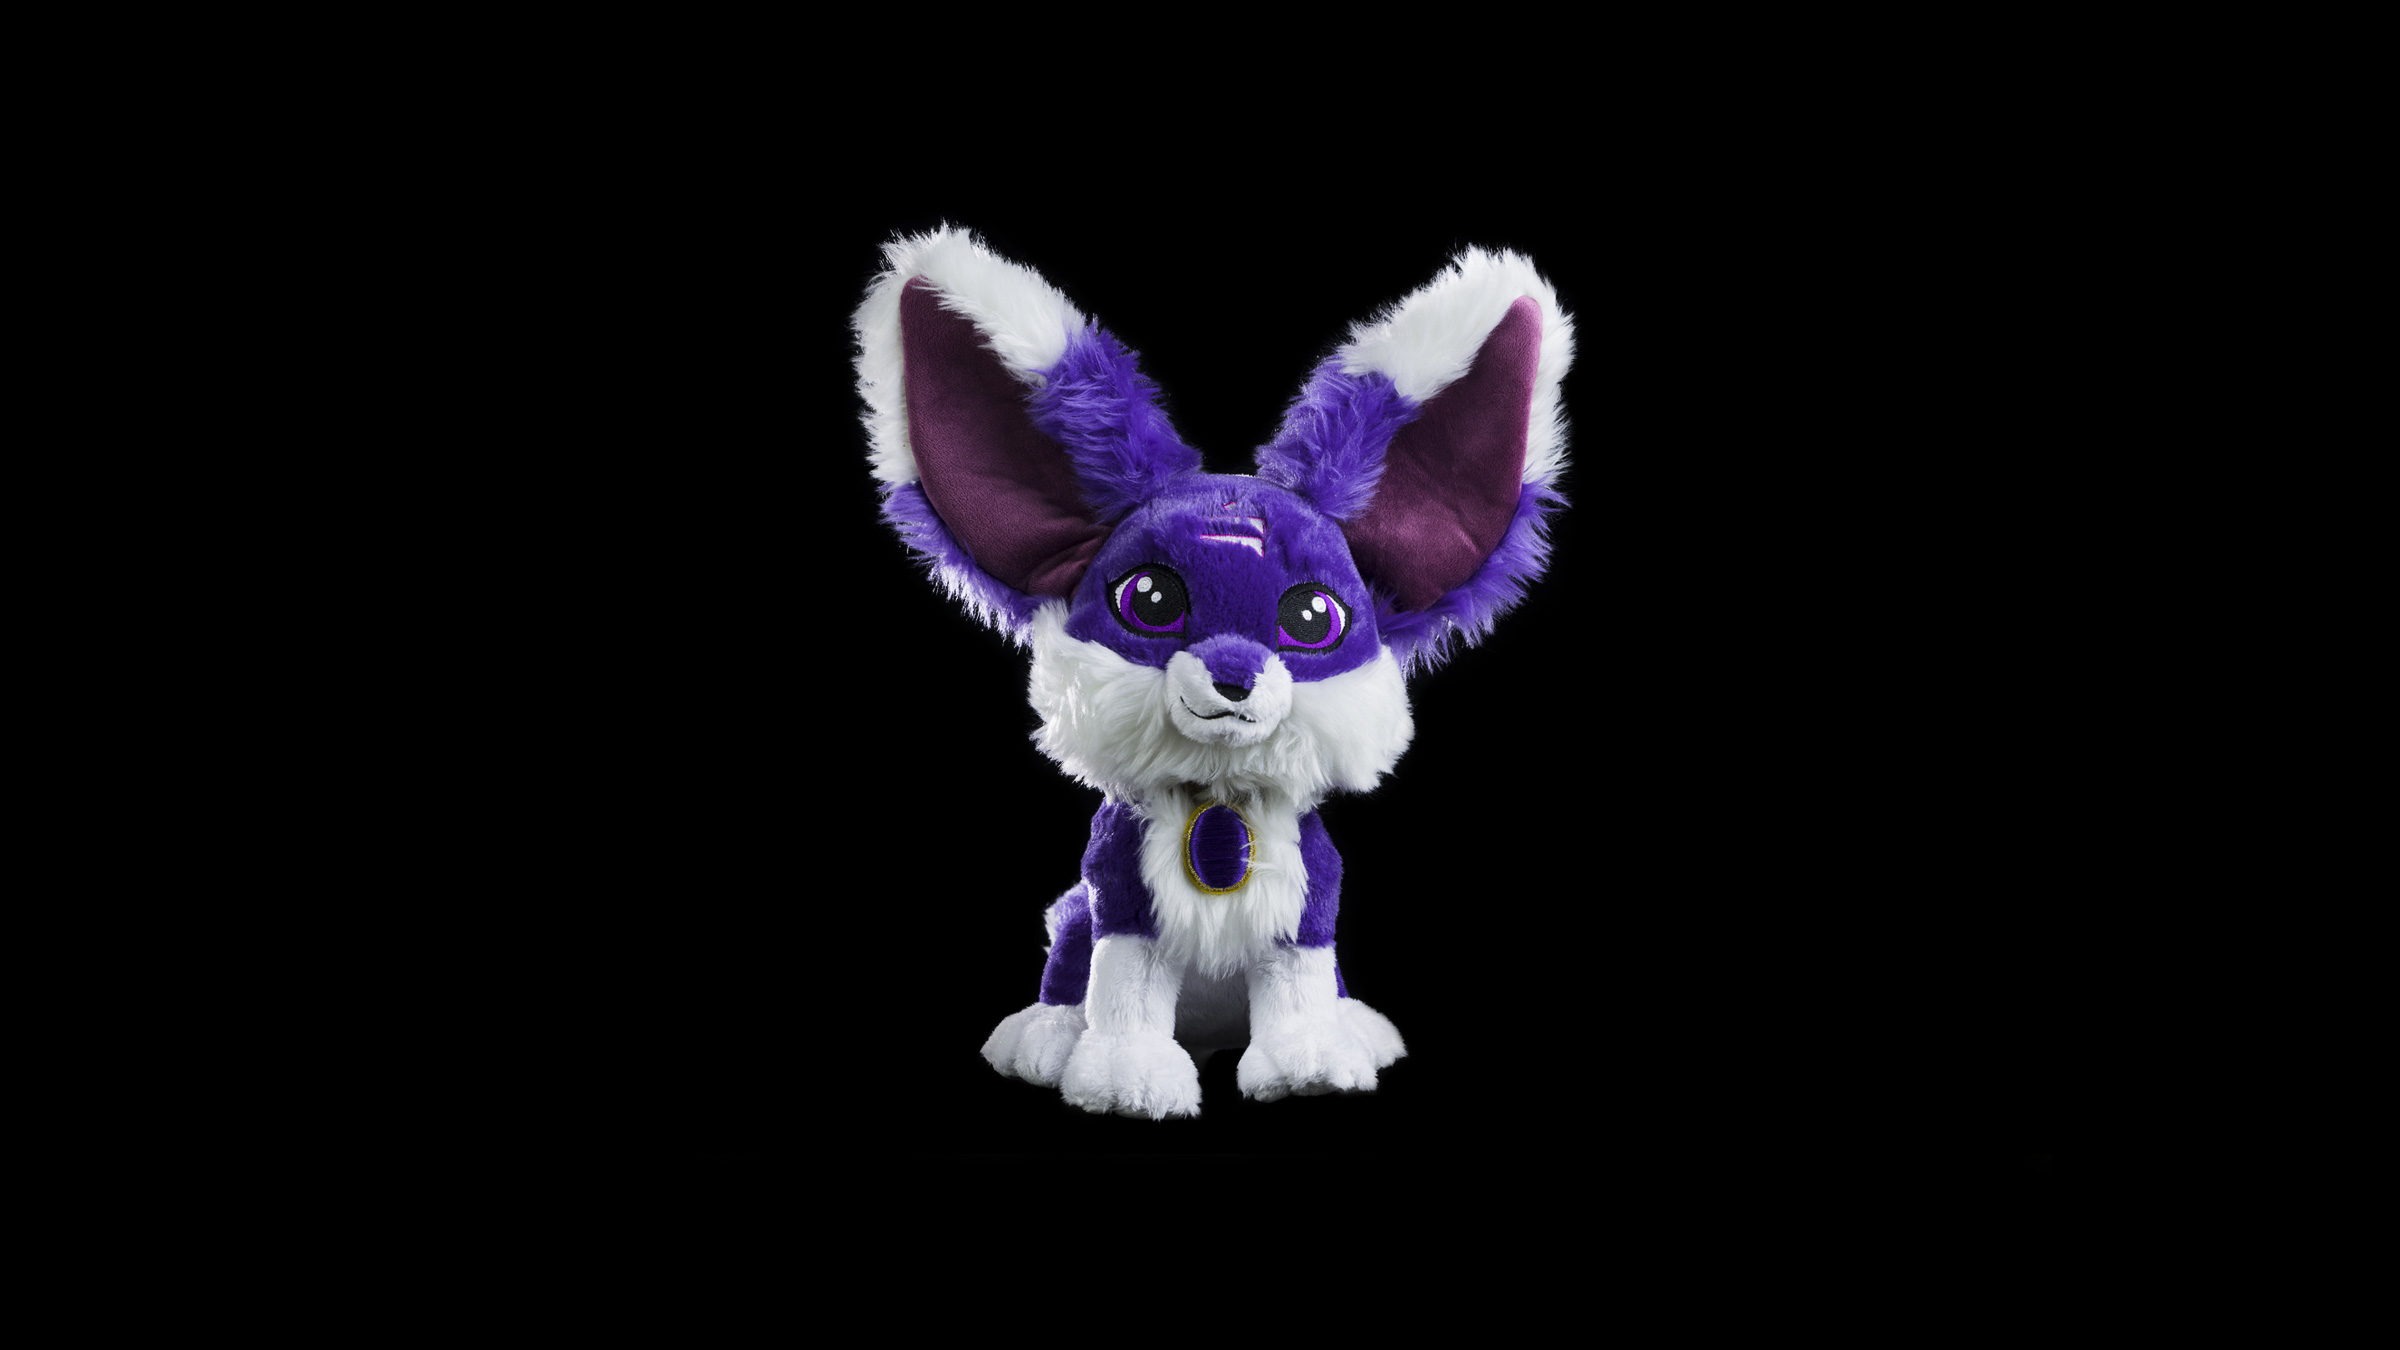 New Plush: Adopt Shadow and Help Support Disaster Relief Efforts